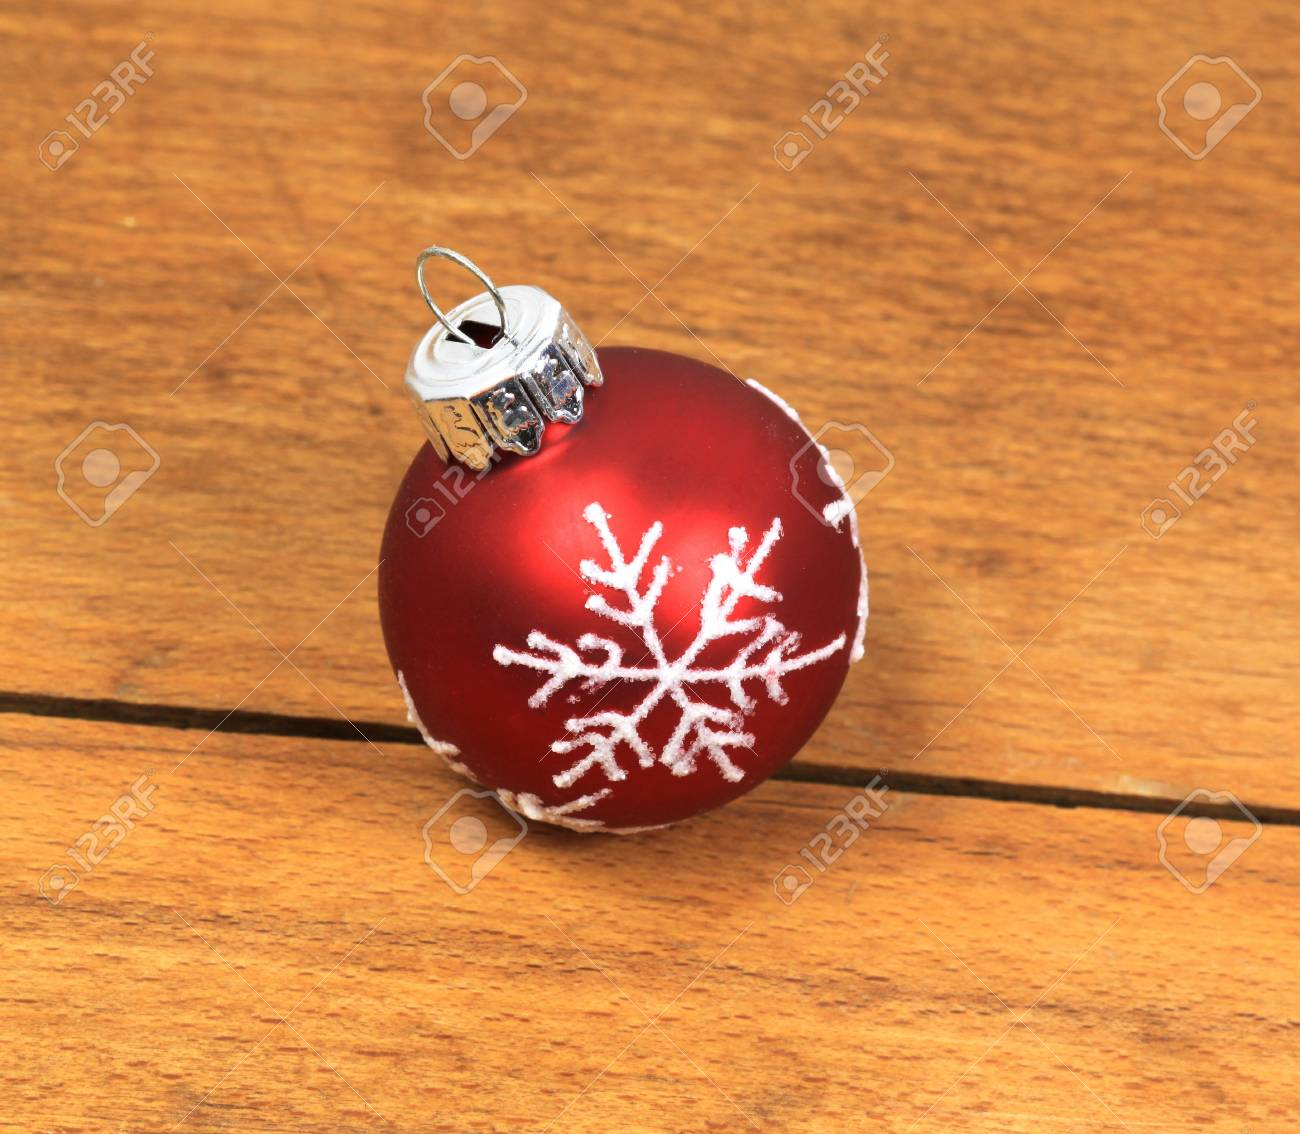 Red glass ball ornaments - Christmas Red Glass Ball With Ornament Snowflake Stock Photo 9251847